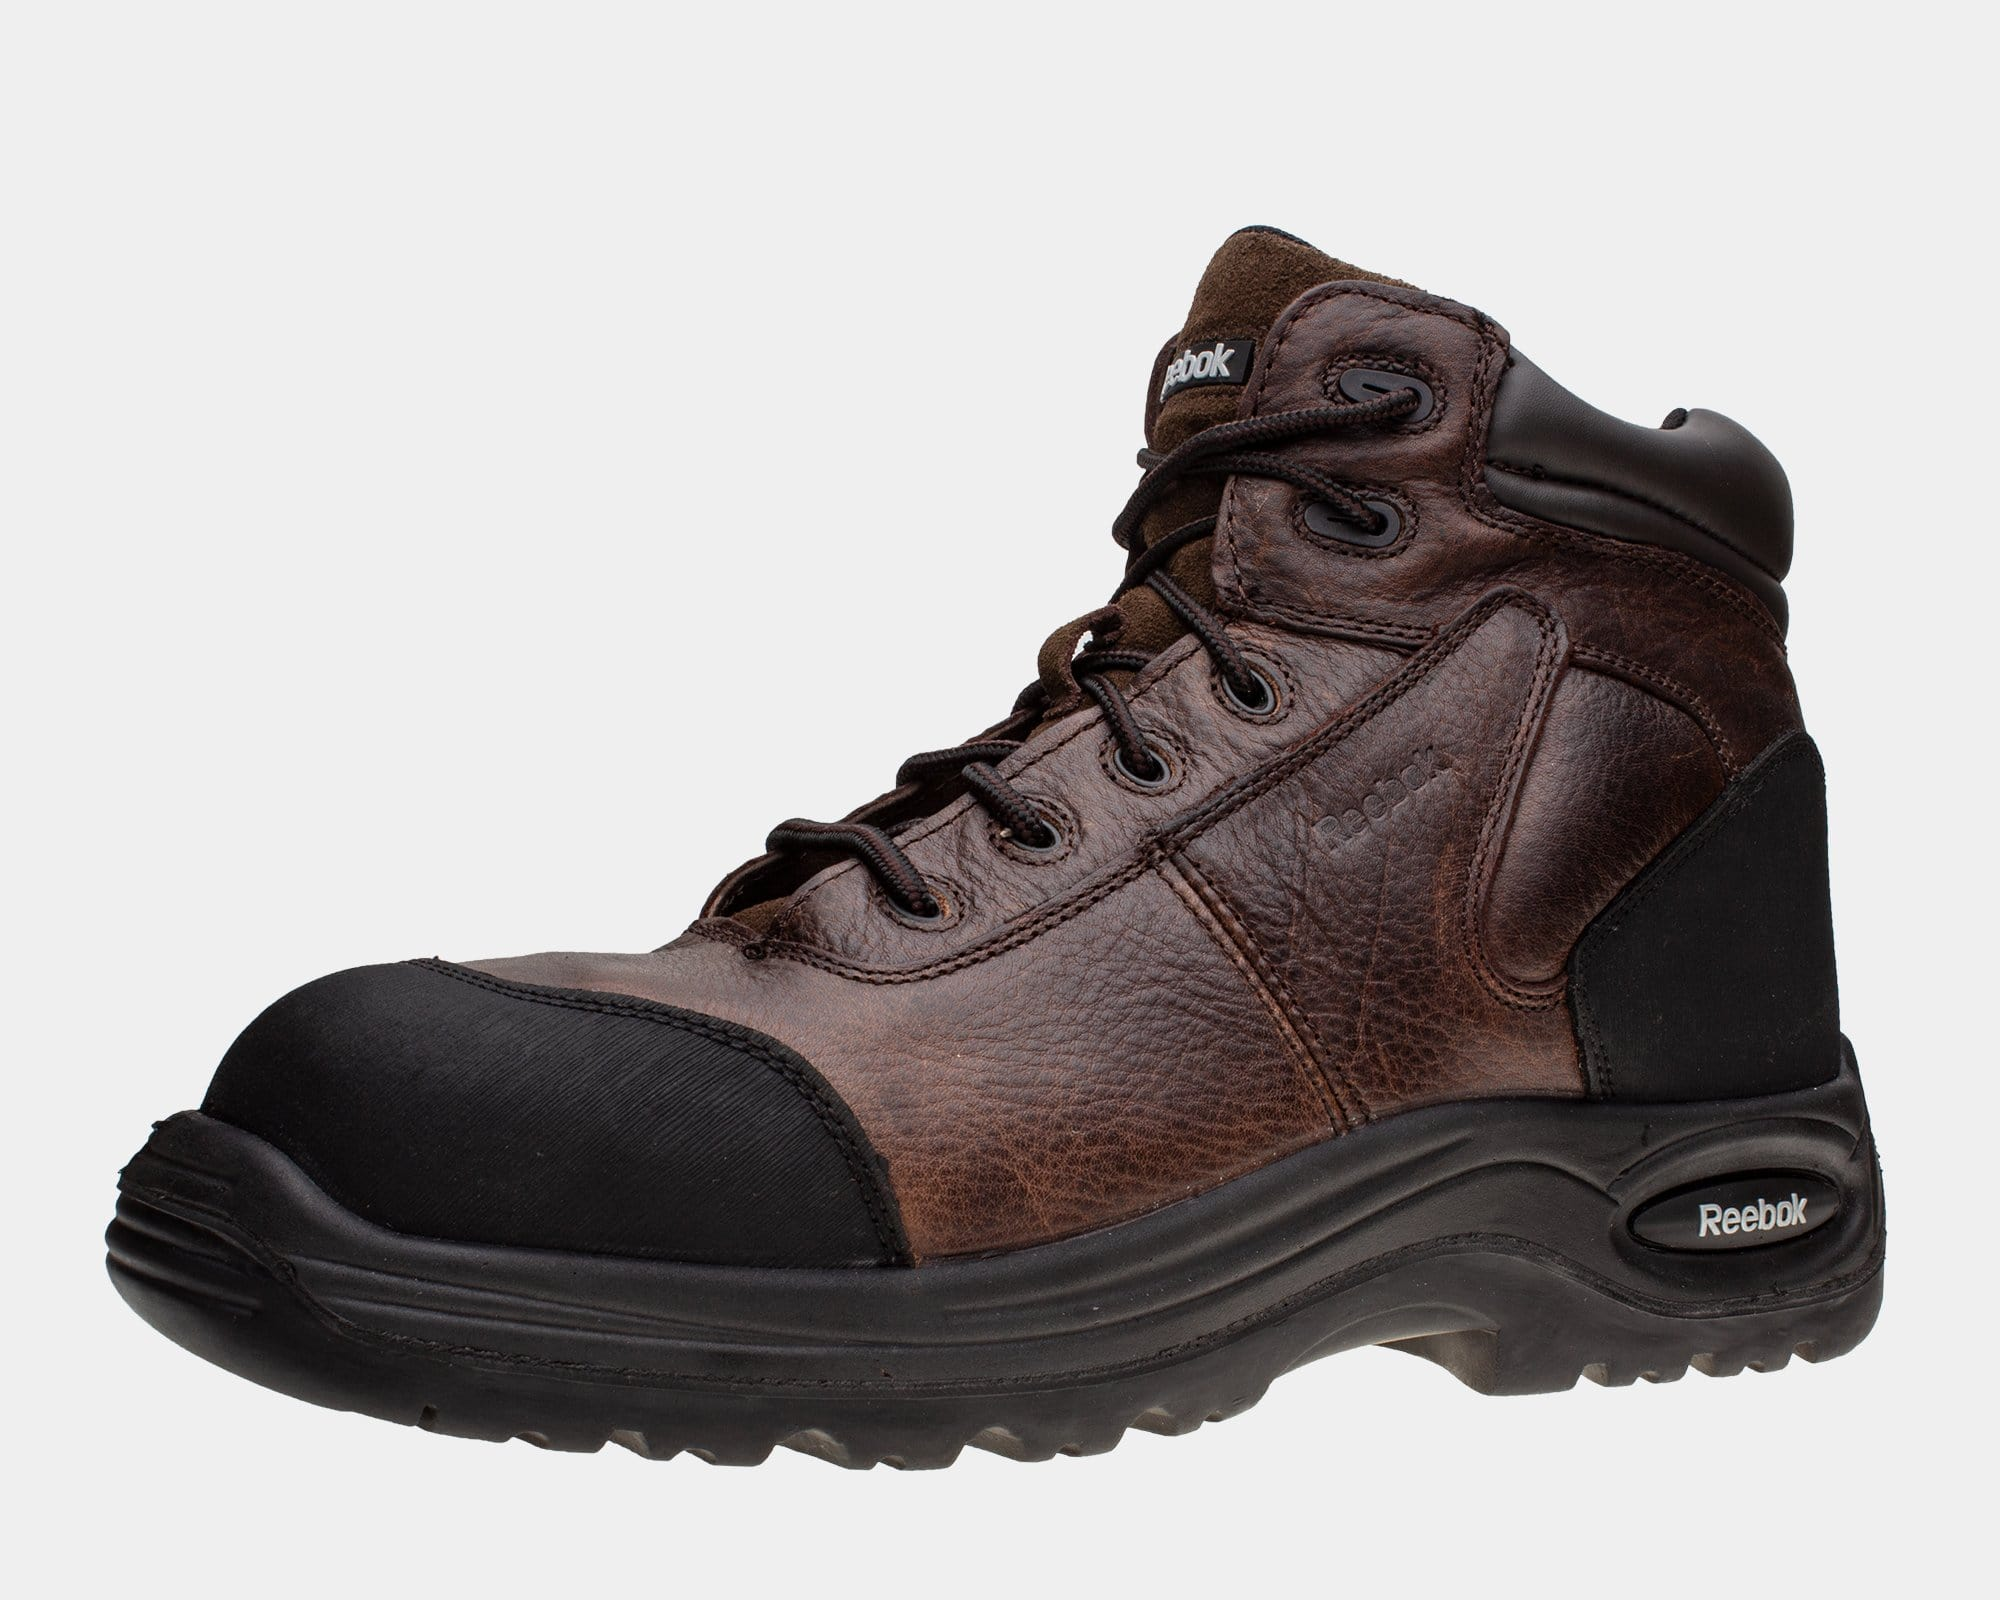 e68585642cd637 Reebok Work 6 Inch Sport Comp Toe Work Boot - Mens Large Sizes